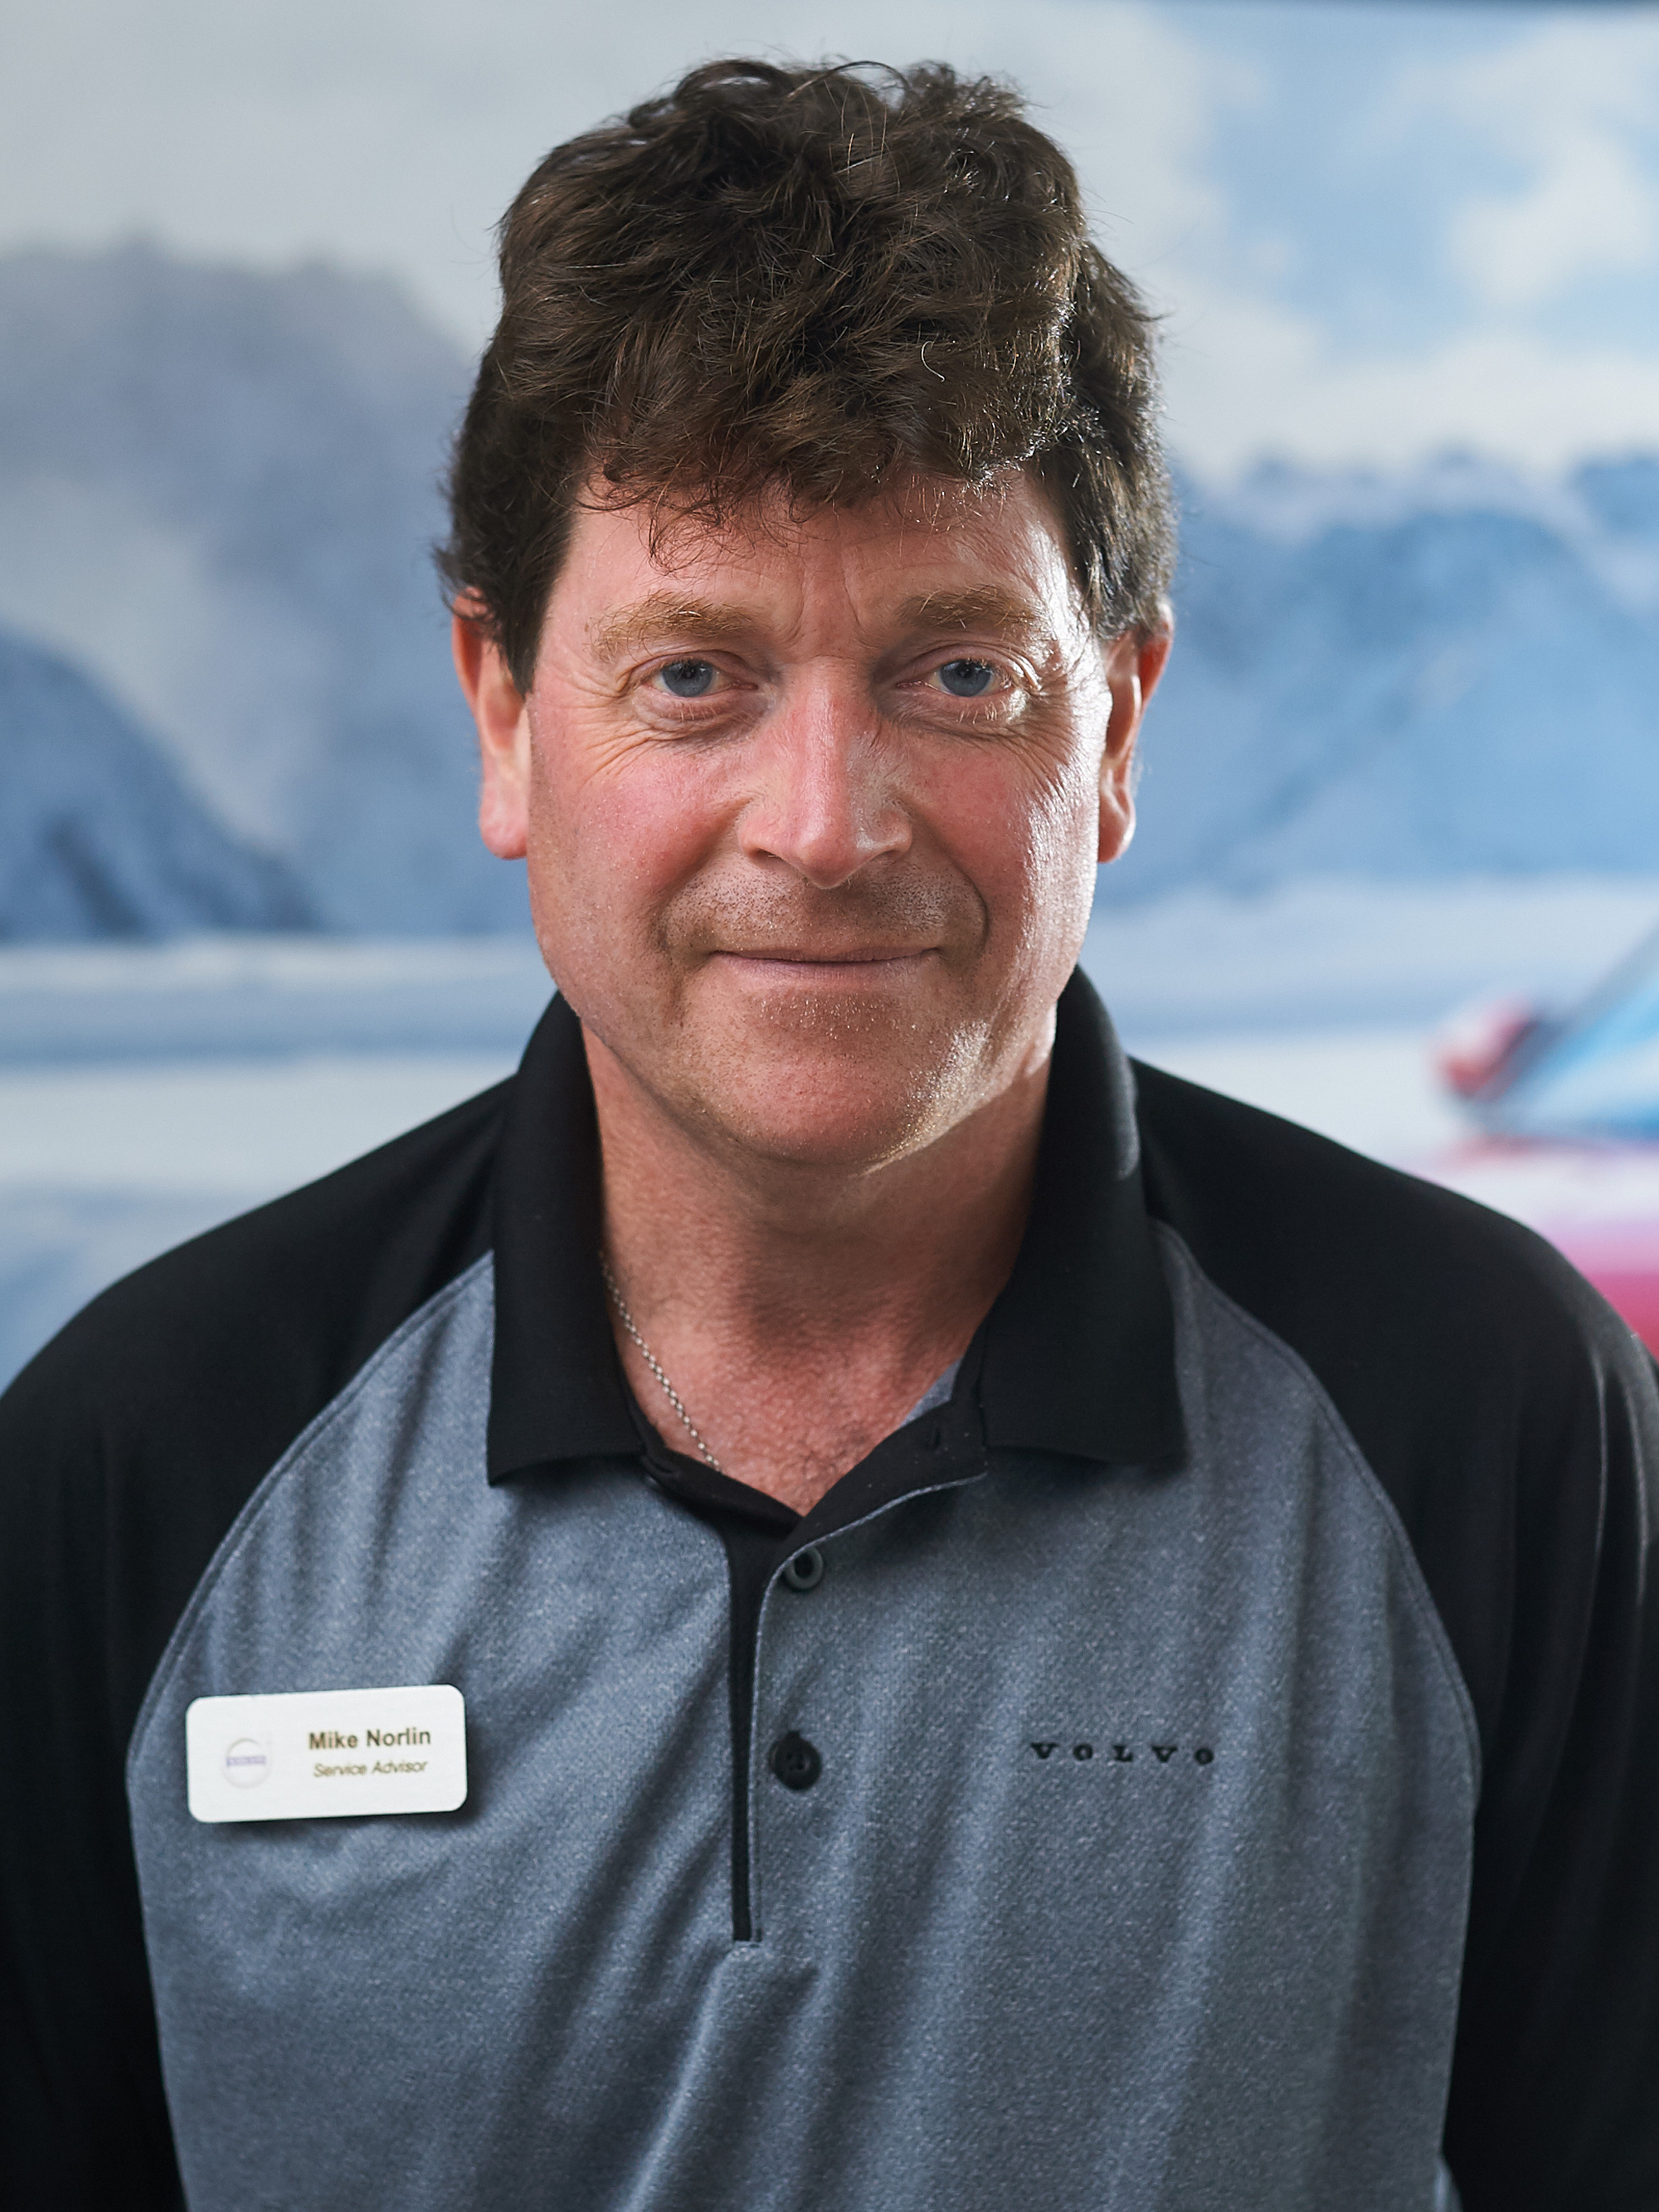 MIKE NORLIN - SERVICE ADVISOR